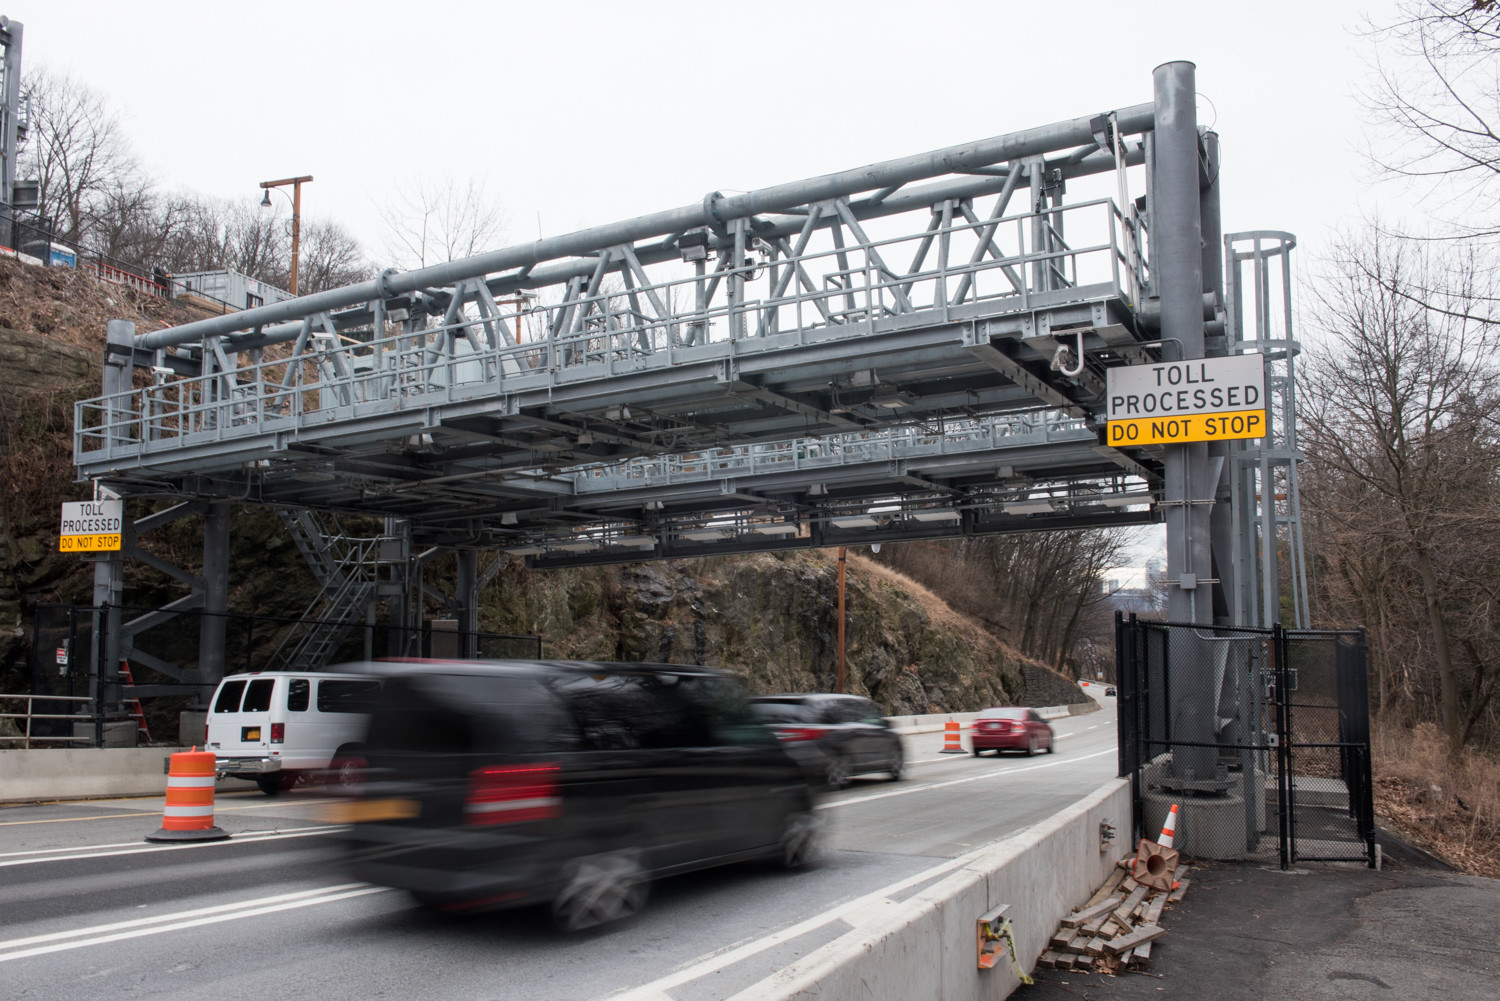 Drivers pass under the cashless tolling structure on the southbound level of the Henry Hudson Bridge. Recently, drivers have complained about receiving excessive penalties for toll violations. If a driver passes under the gantry with insufficient funds in their E-ZPass account, they risk getting hit with a violation fee of $50 or $100, depending on the bridge or tunnel.